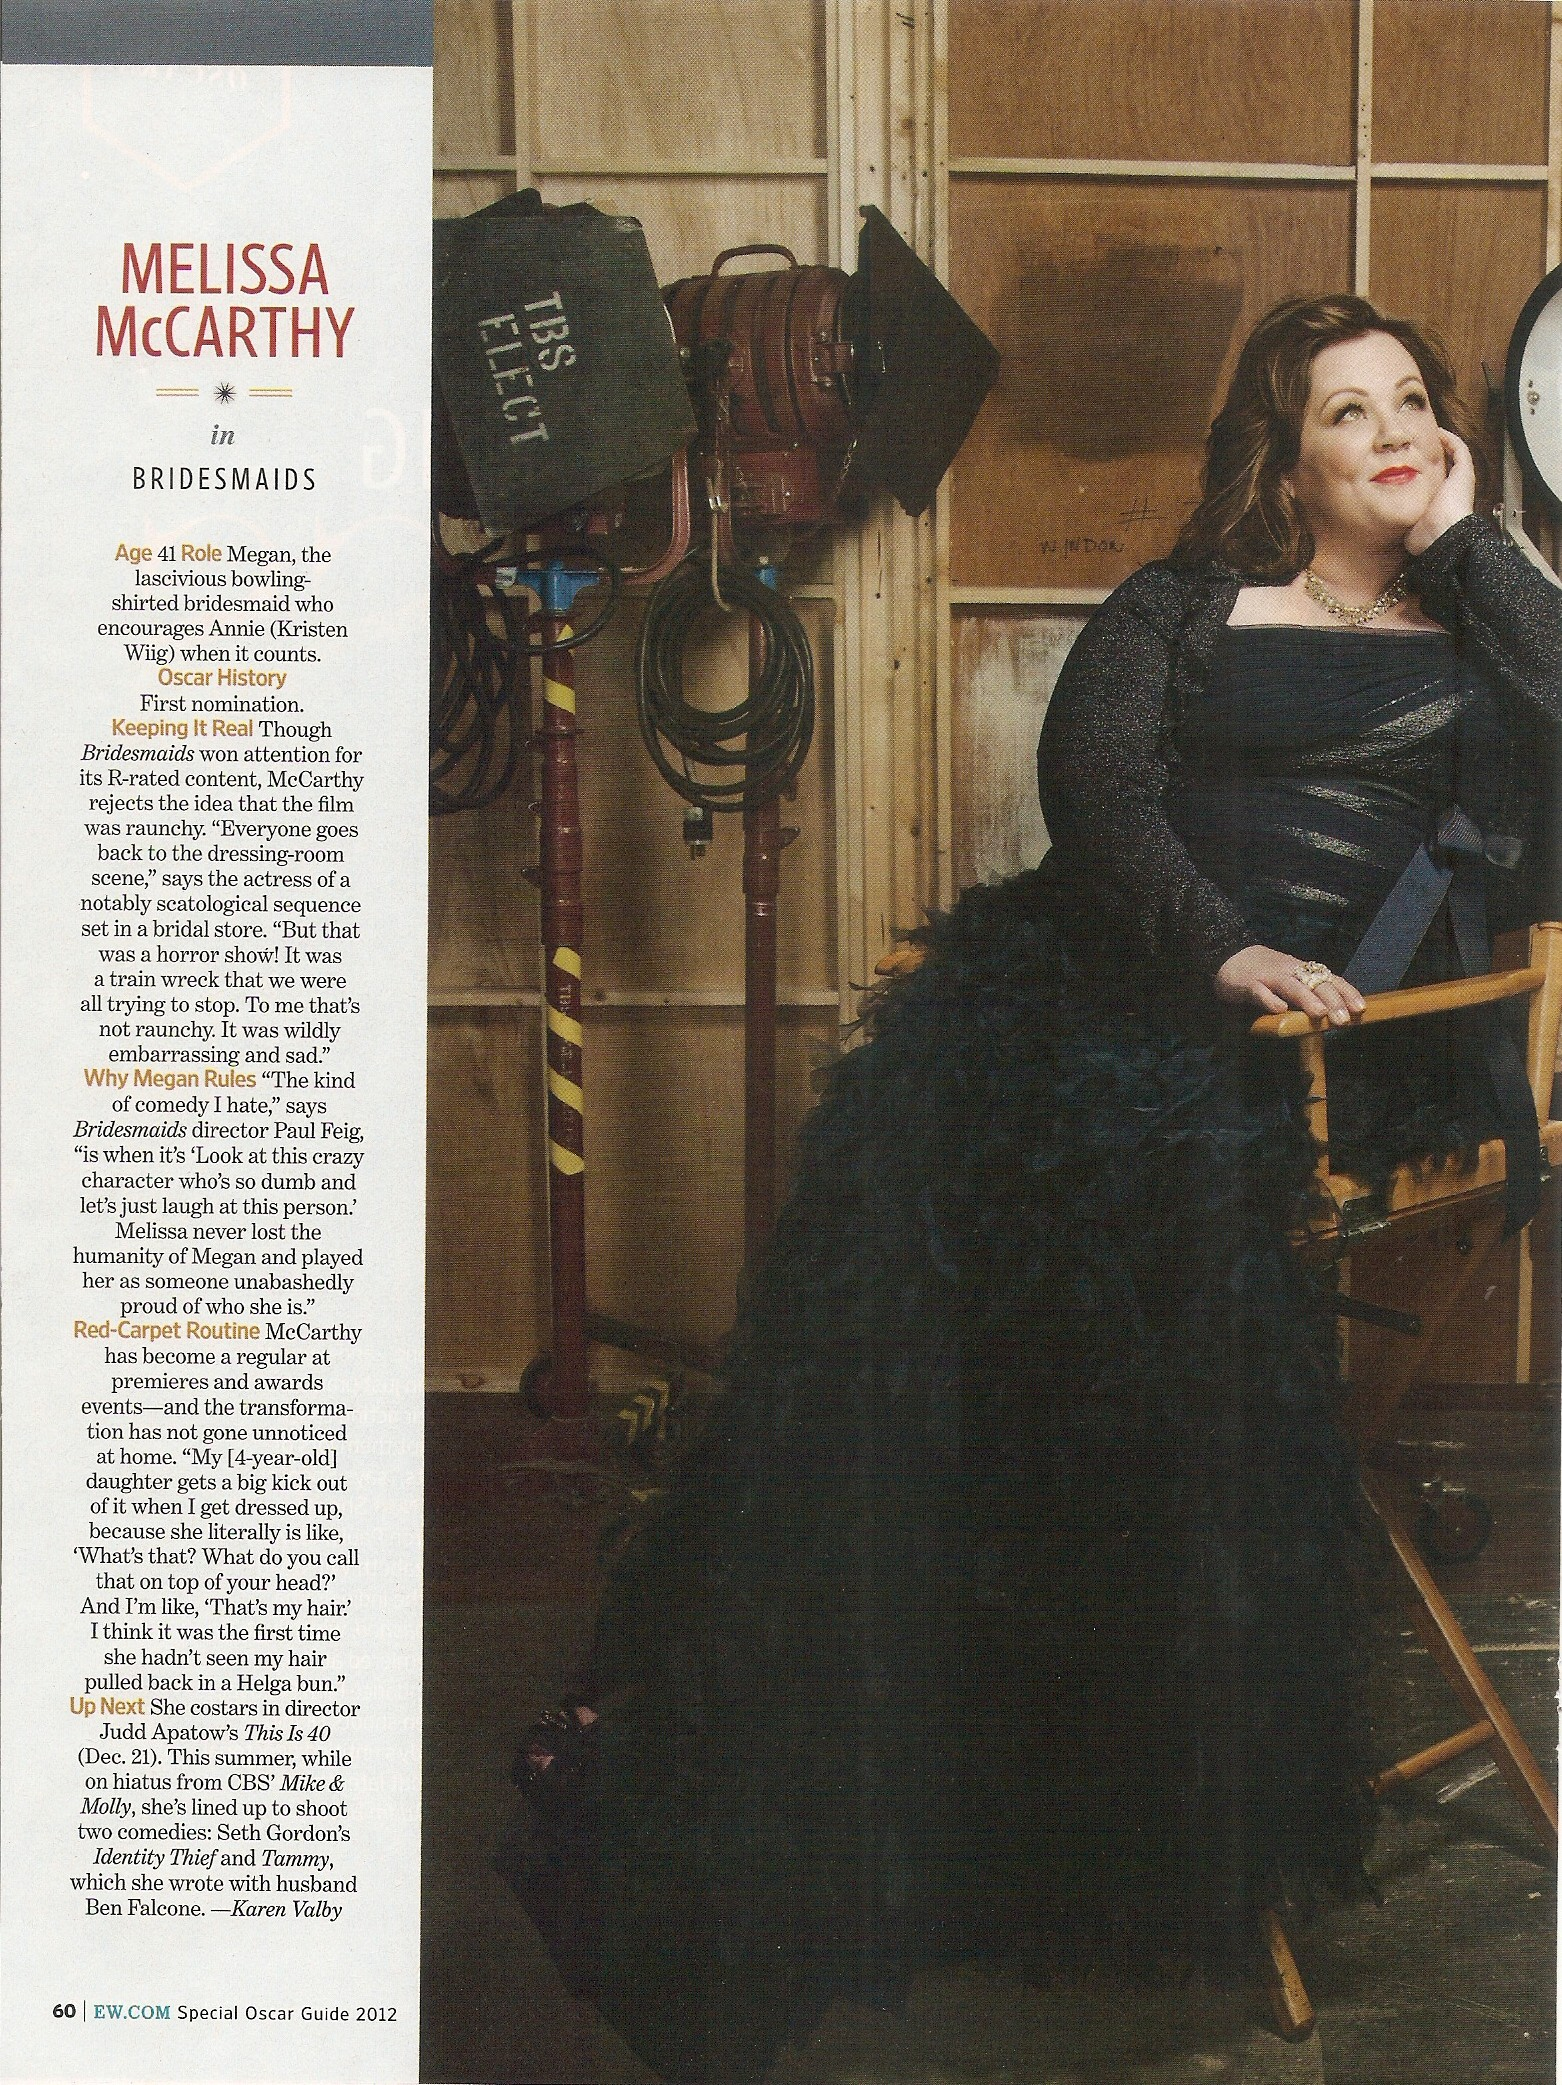 Melissa McCarthy Melissa McCarthy - Entertainment Weekly